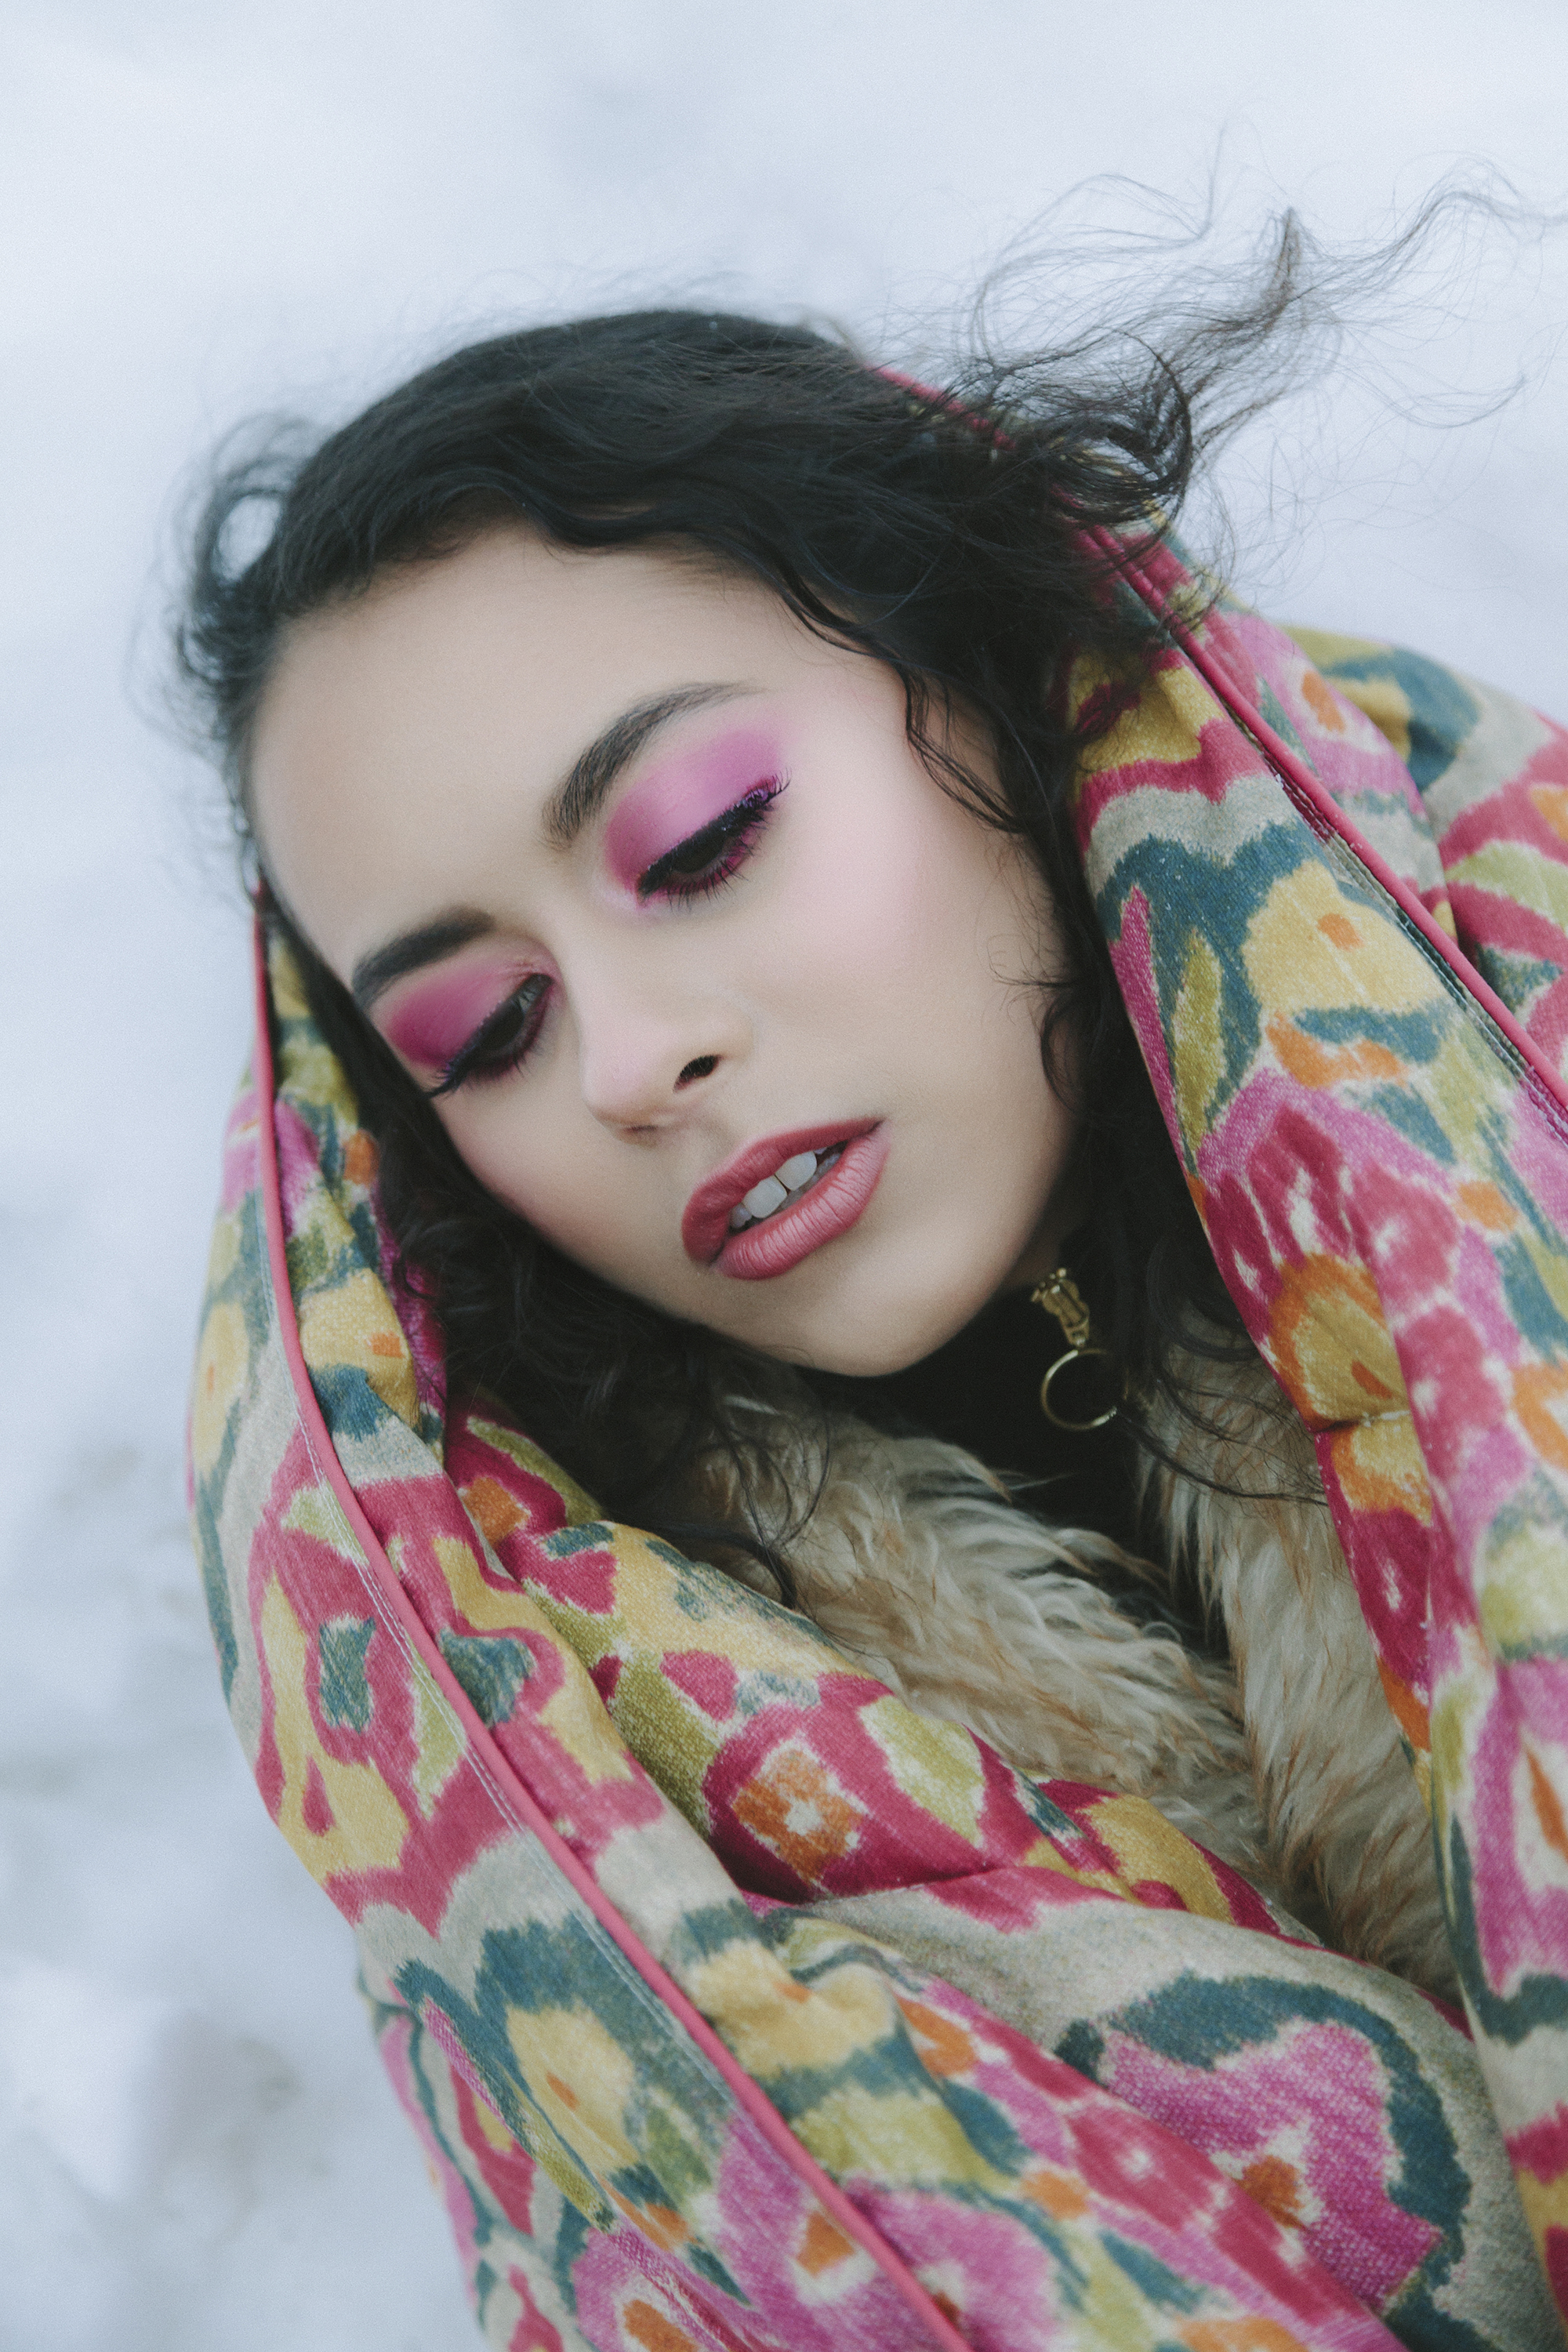 lPenelope's Dream - Editorial by Rose Catherine Hohl